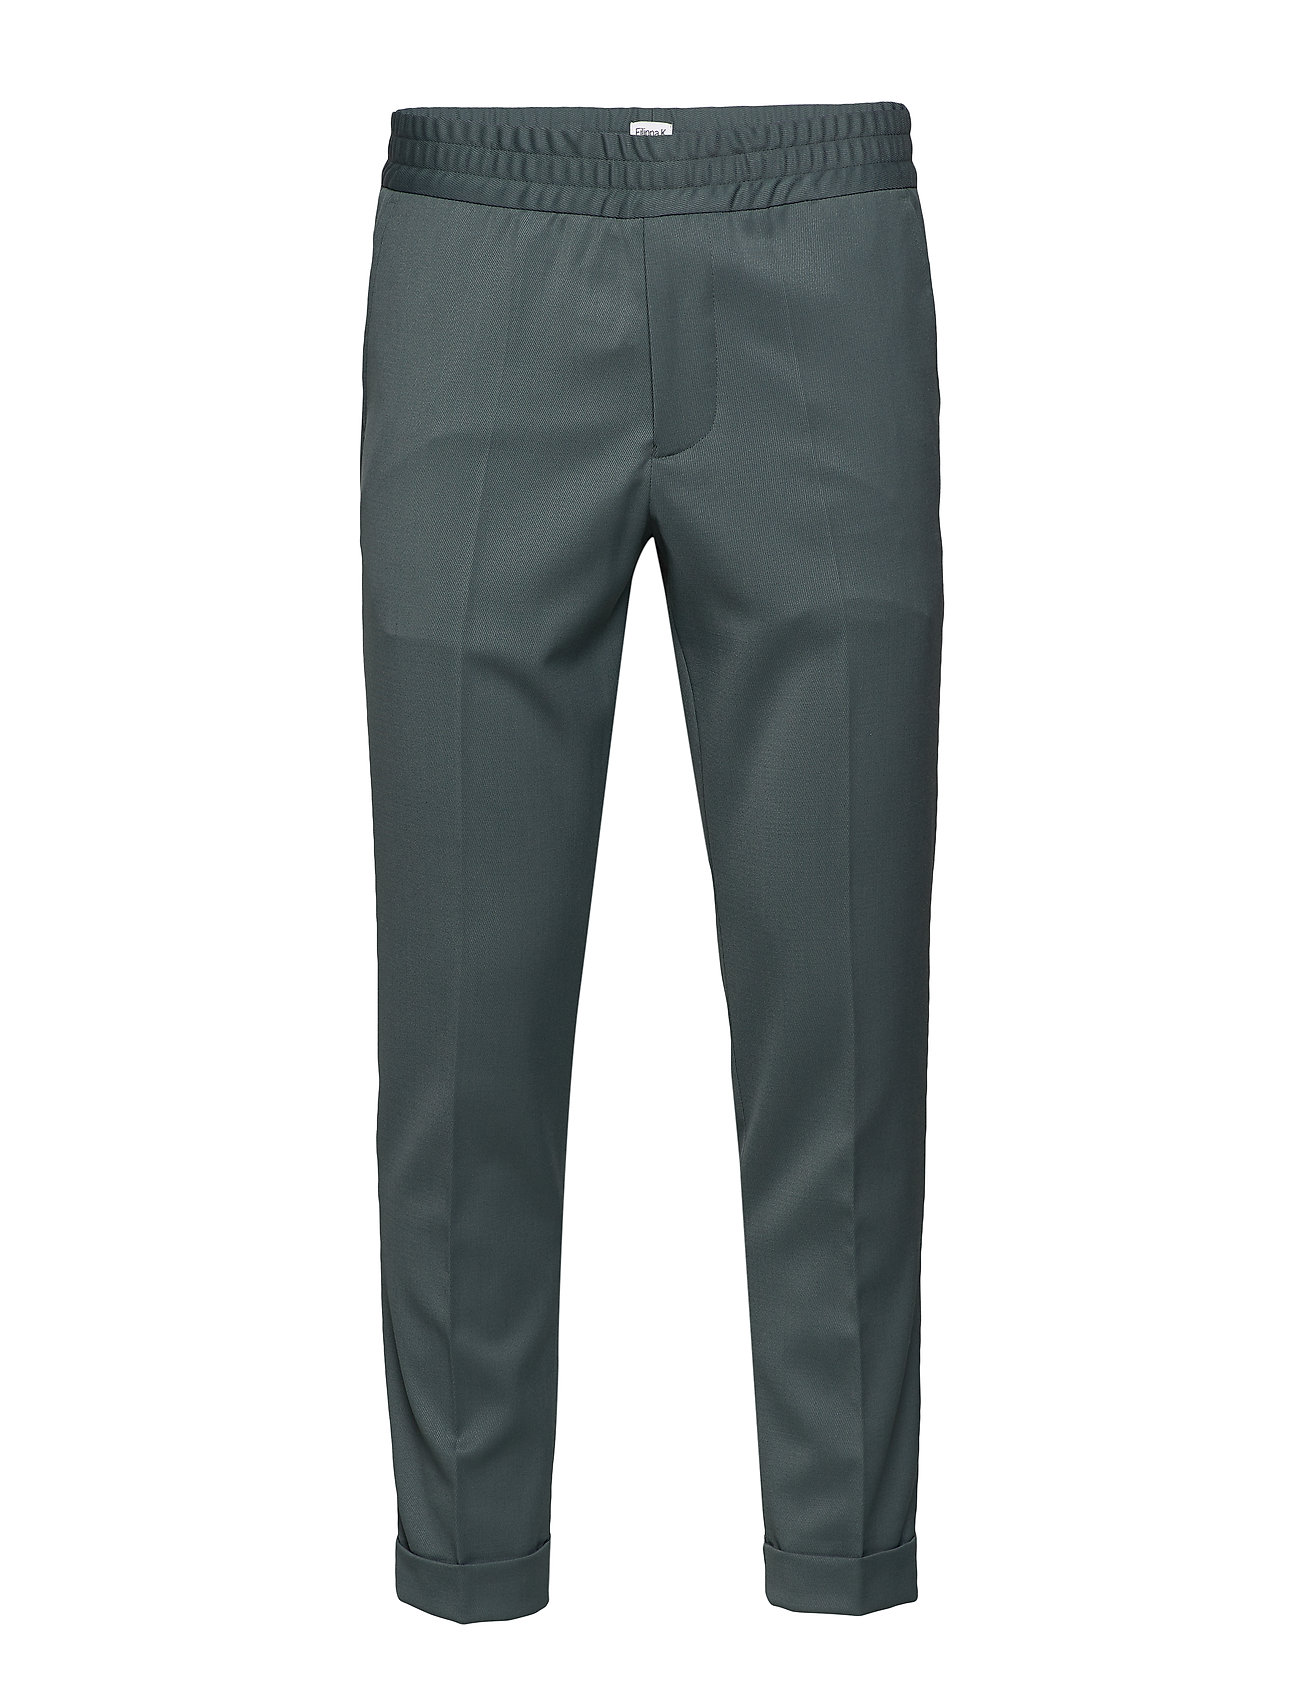 Filippa K M. Terry Gabardine Pants - DARK MINT